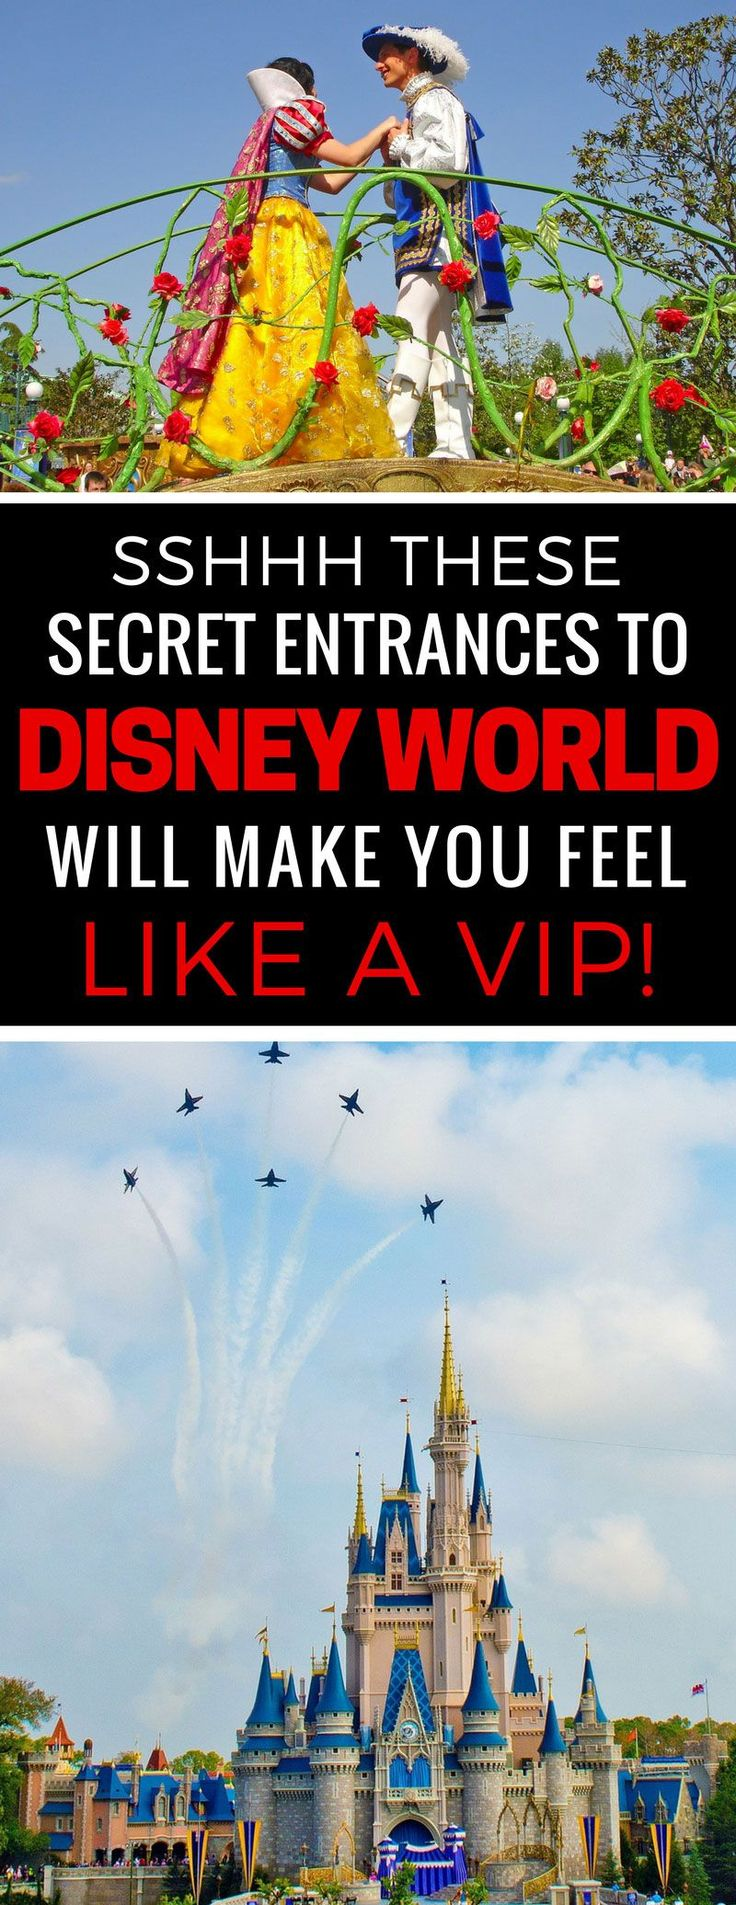 Who knew! I'm printing this list out because these secret entrances are going to save us a ton of time on our Disney vacation! Thanks for sharing!